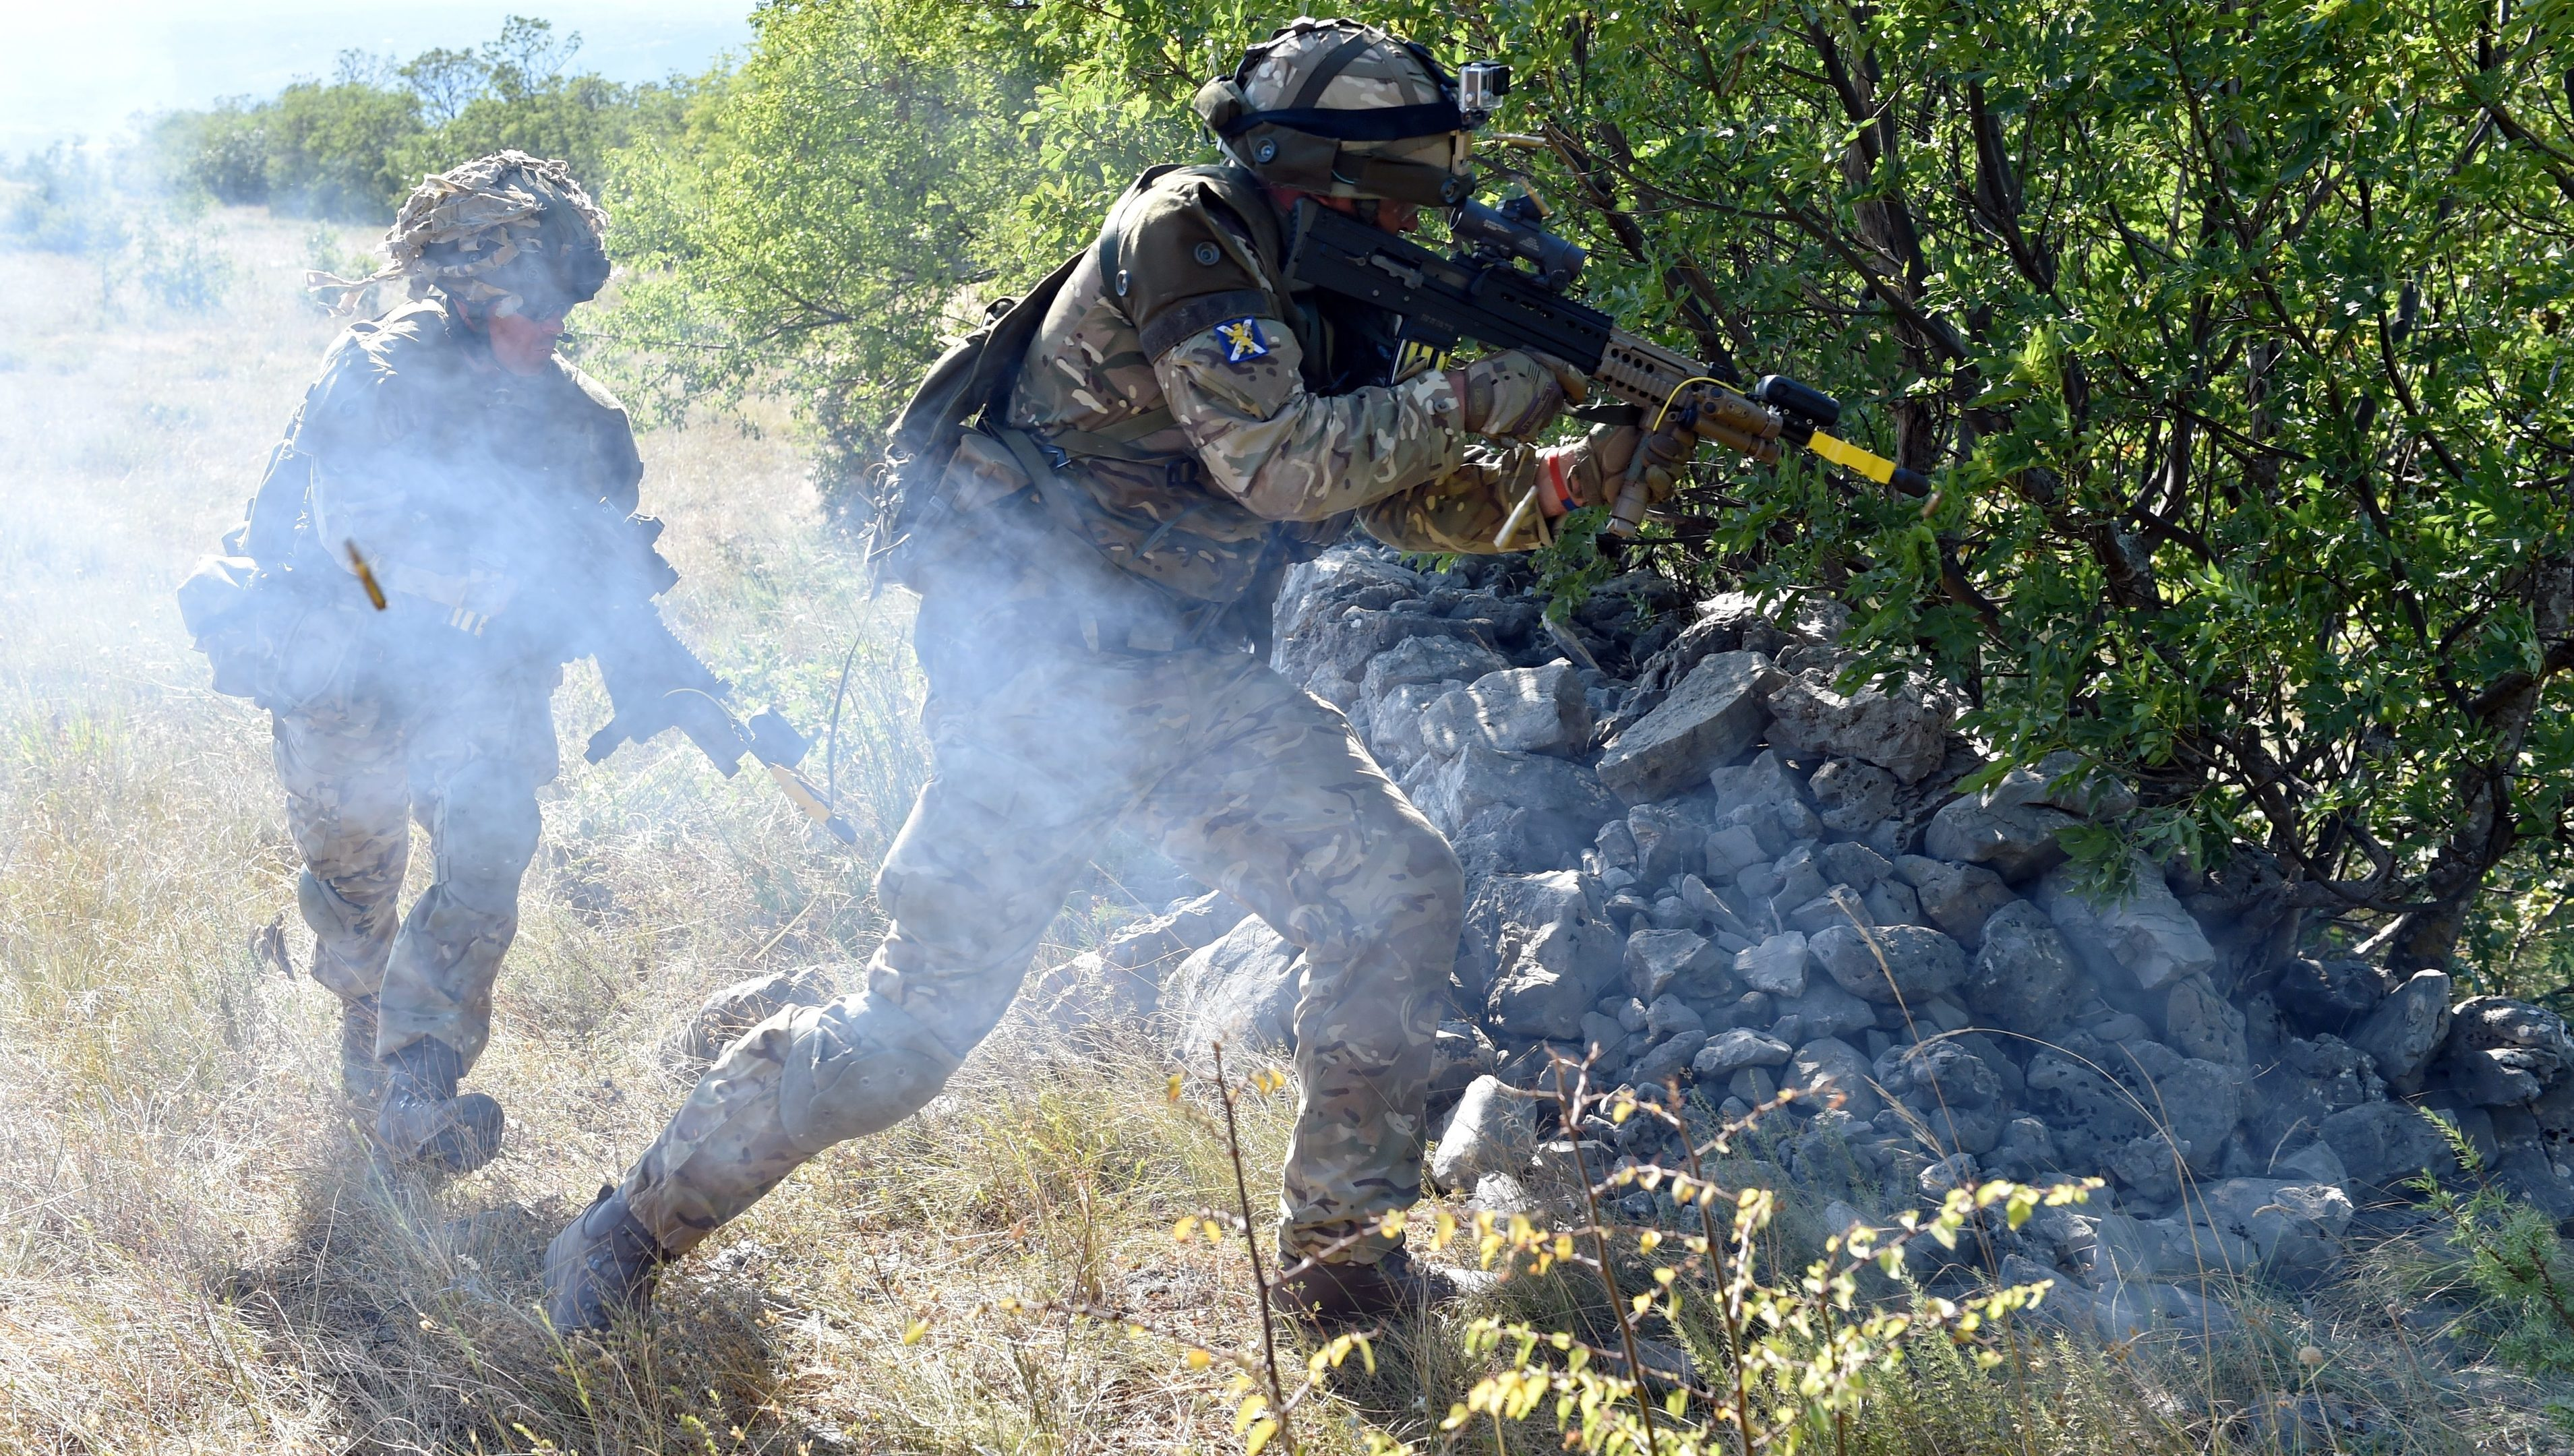 51st Highland, 7th Battalion, Royal Regiment of Scotland, 7 SCOTS;  Exercise Sava Star at Red Earth training facility, Croatia.